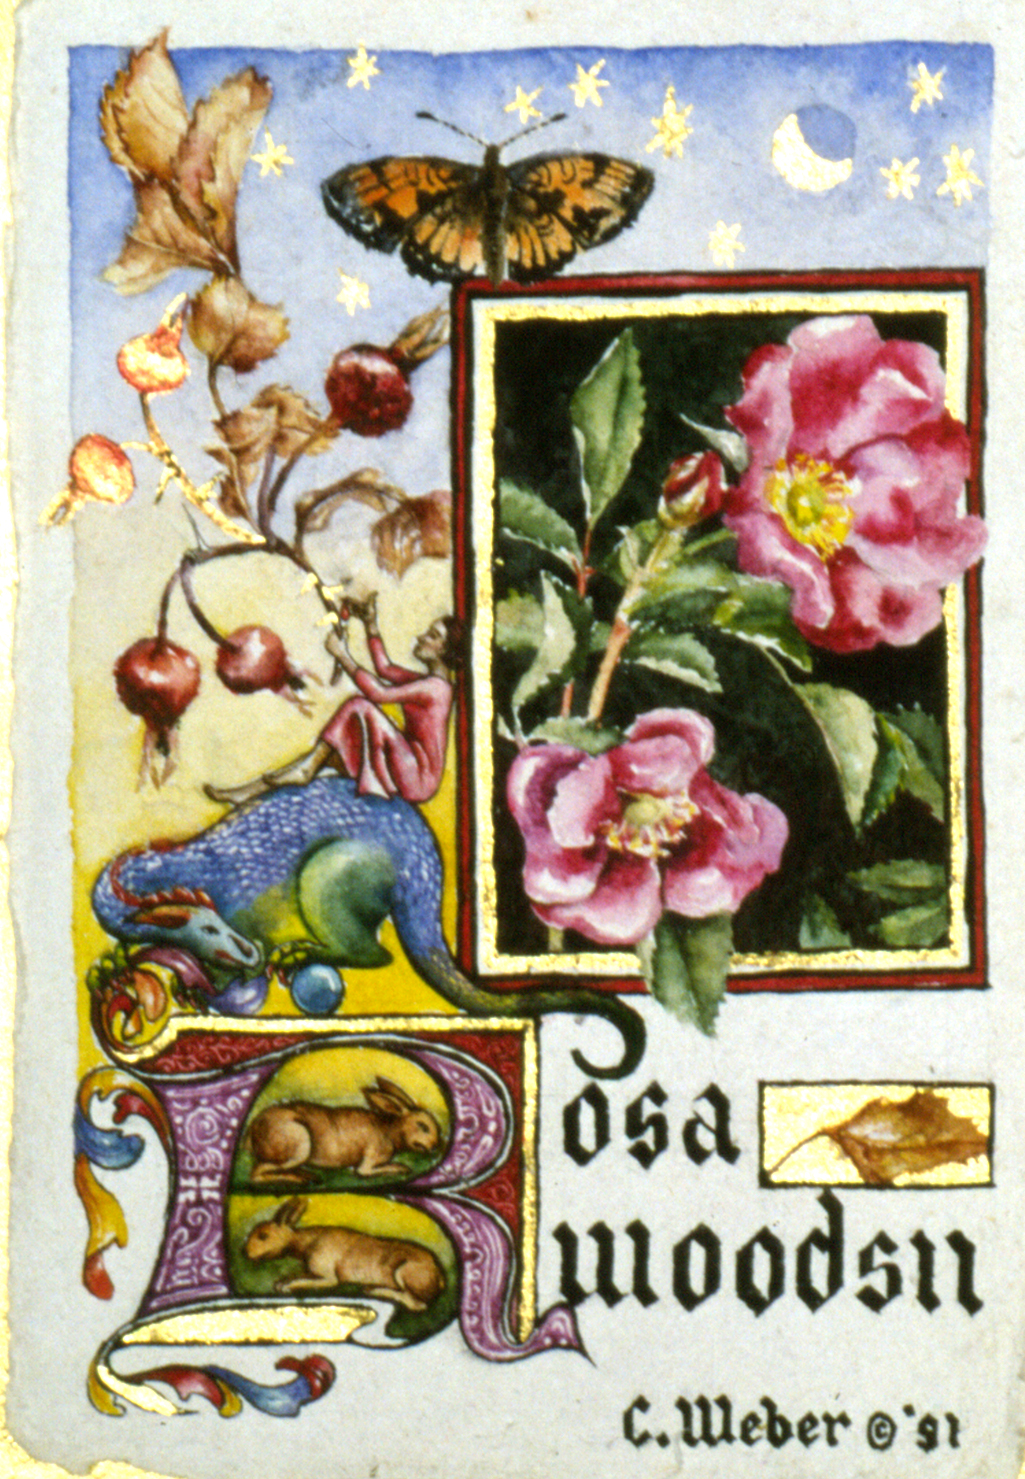 cathy weber - art - illumination - calligraphy - manuscript - watercolor - woman - rose - montana